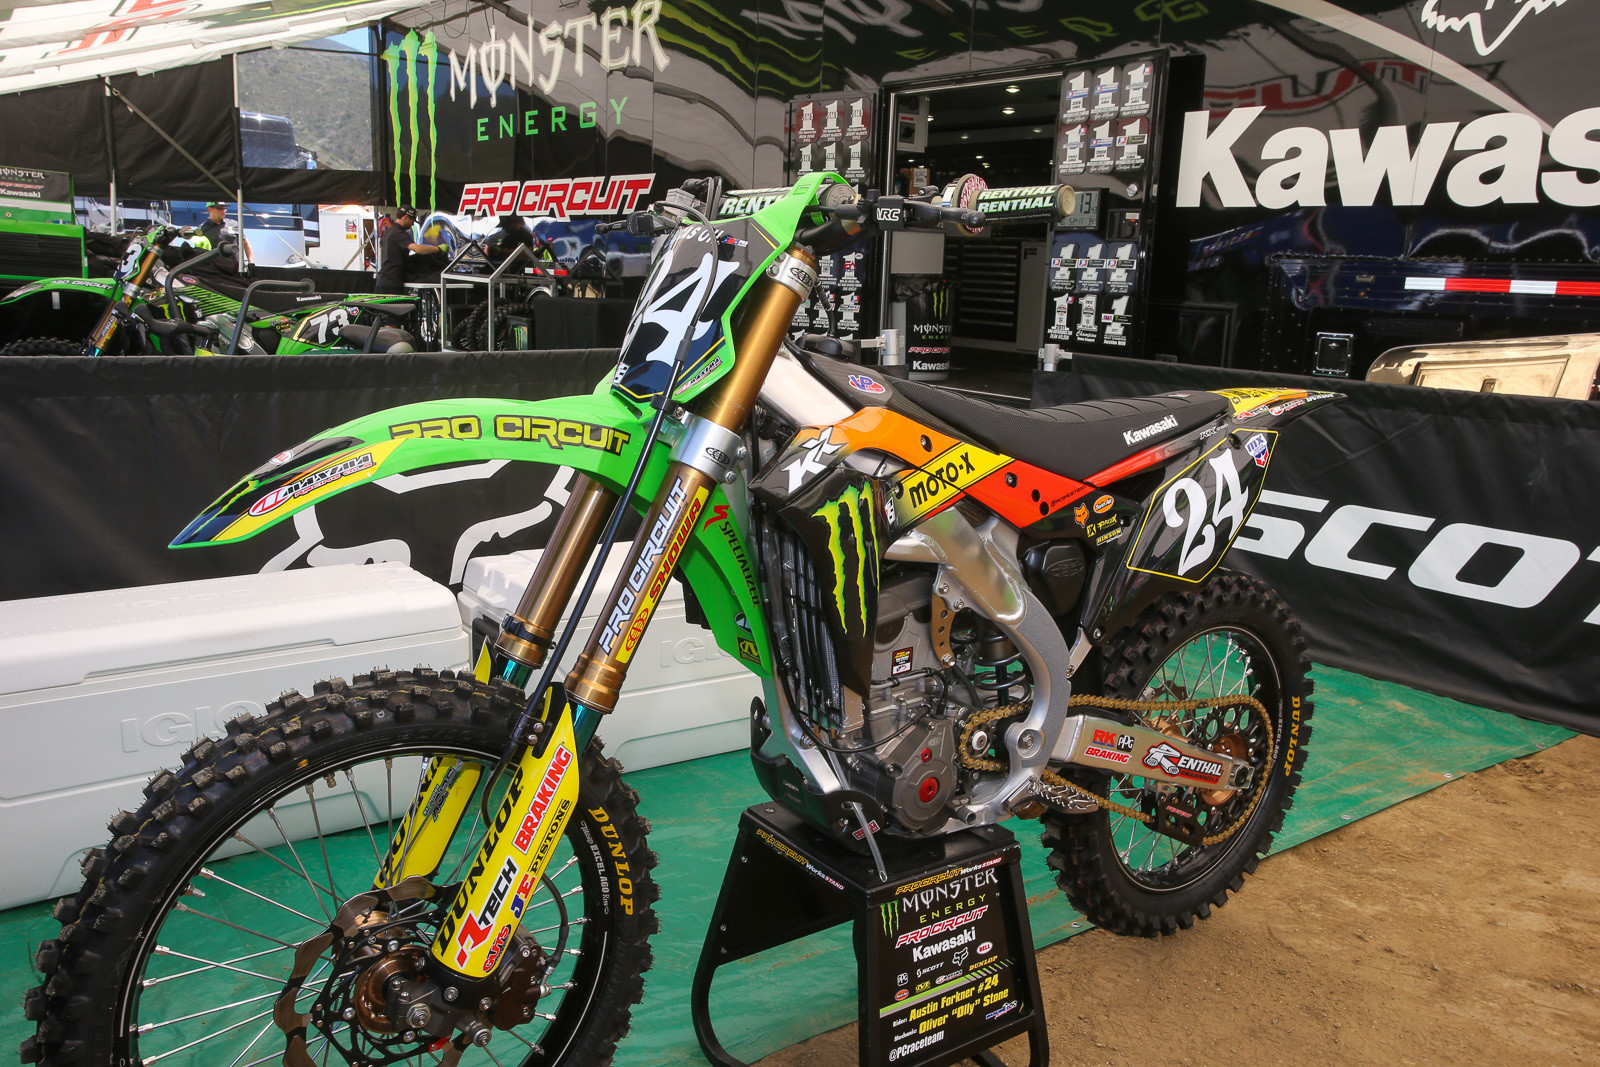 We hear that Fox floated the idea of these graphics (and old school numbers) for the weekend to match the gear, but that it got shot down by the guys at Kawasaki.